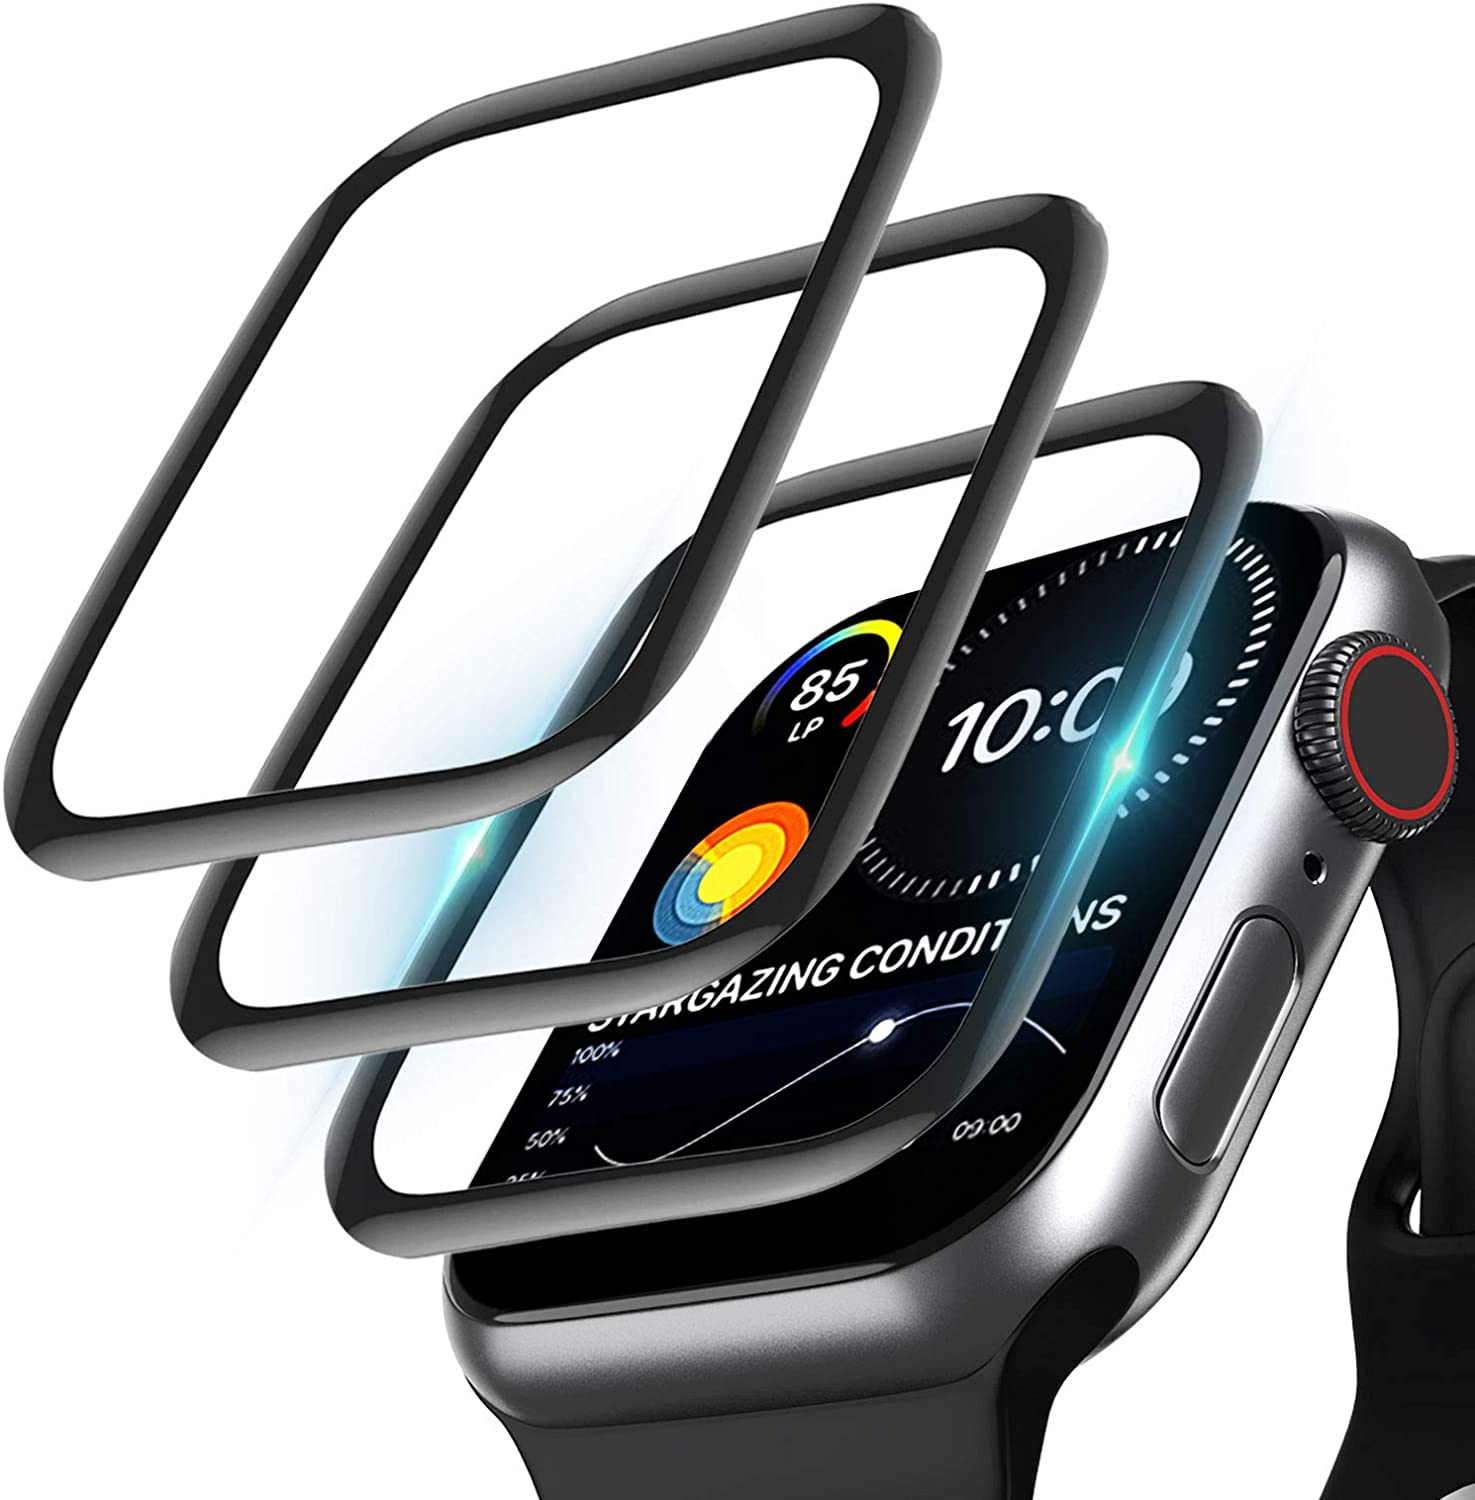 [3 Pack] Screen Protector Compatible with Apple Watch Series 6/5/4/SE 44MM, Full Coverage Bubble-Free Anti-Scratch Shatterproof HD Ultra Clear Flexible Film Screen Protector for iWatch 6/5/4/SE (44MM)